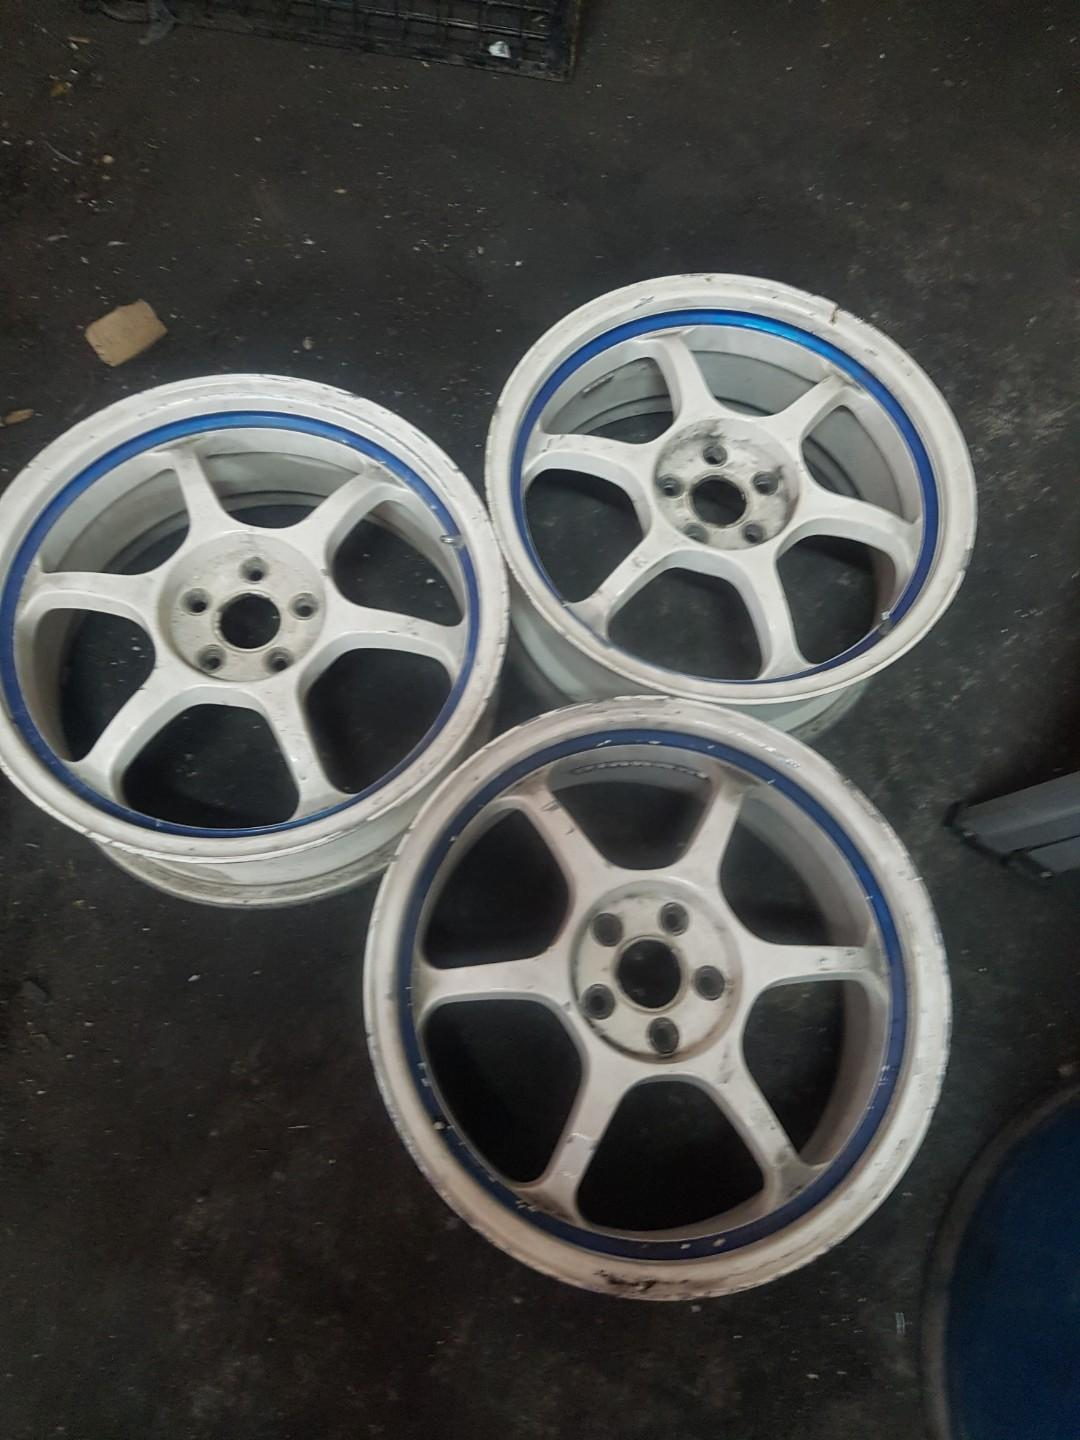 3 pcs advan rg ..5x100..17x7.5jj